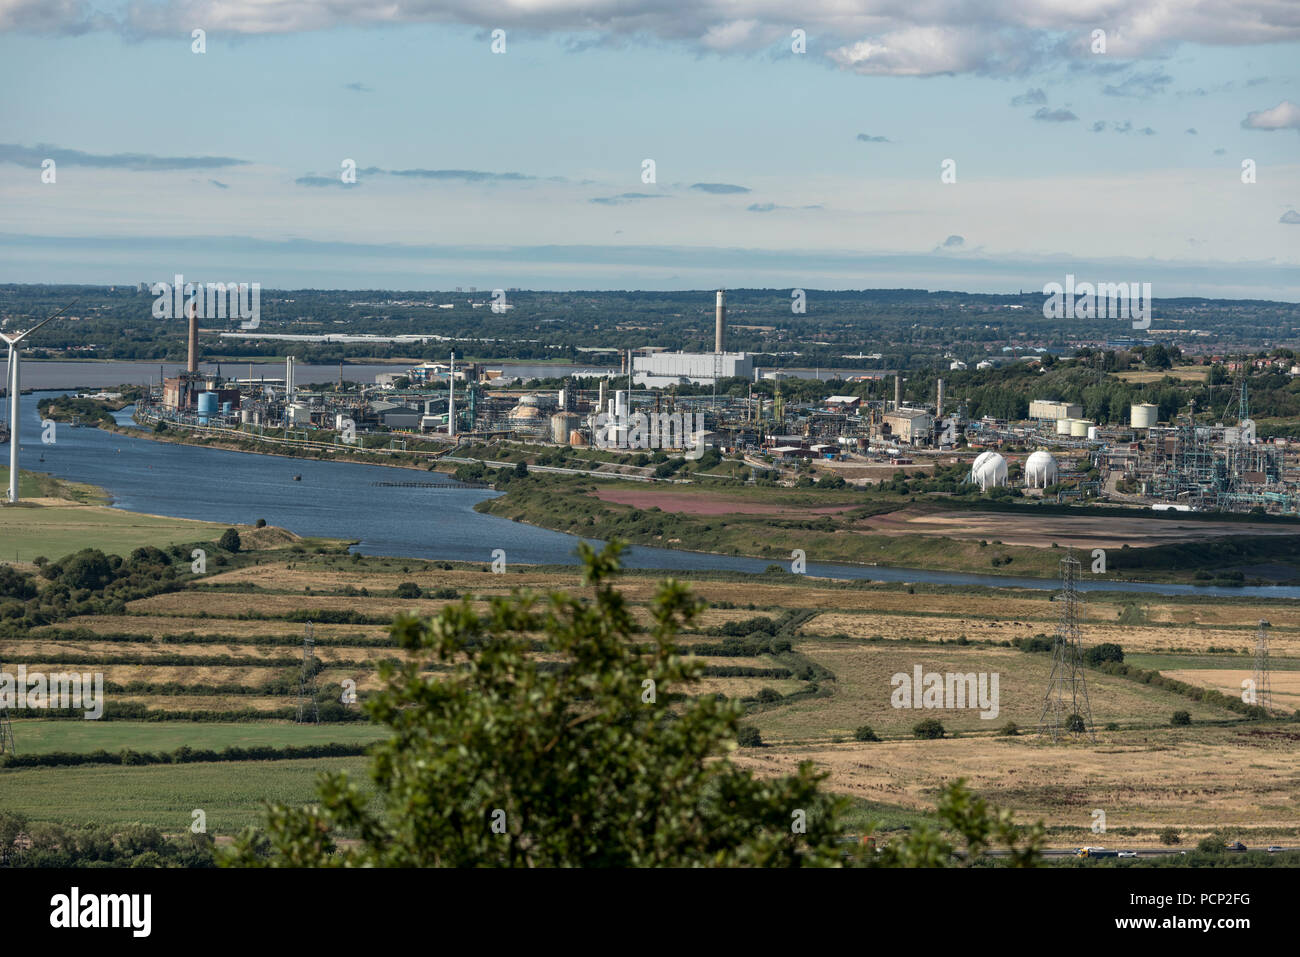 Castner Kellner chemical plant Weston Point Runcorn seen from Overton Hill Frodsham. North West England. - Stock Image